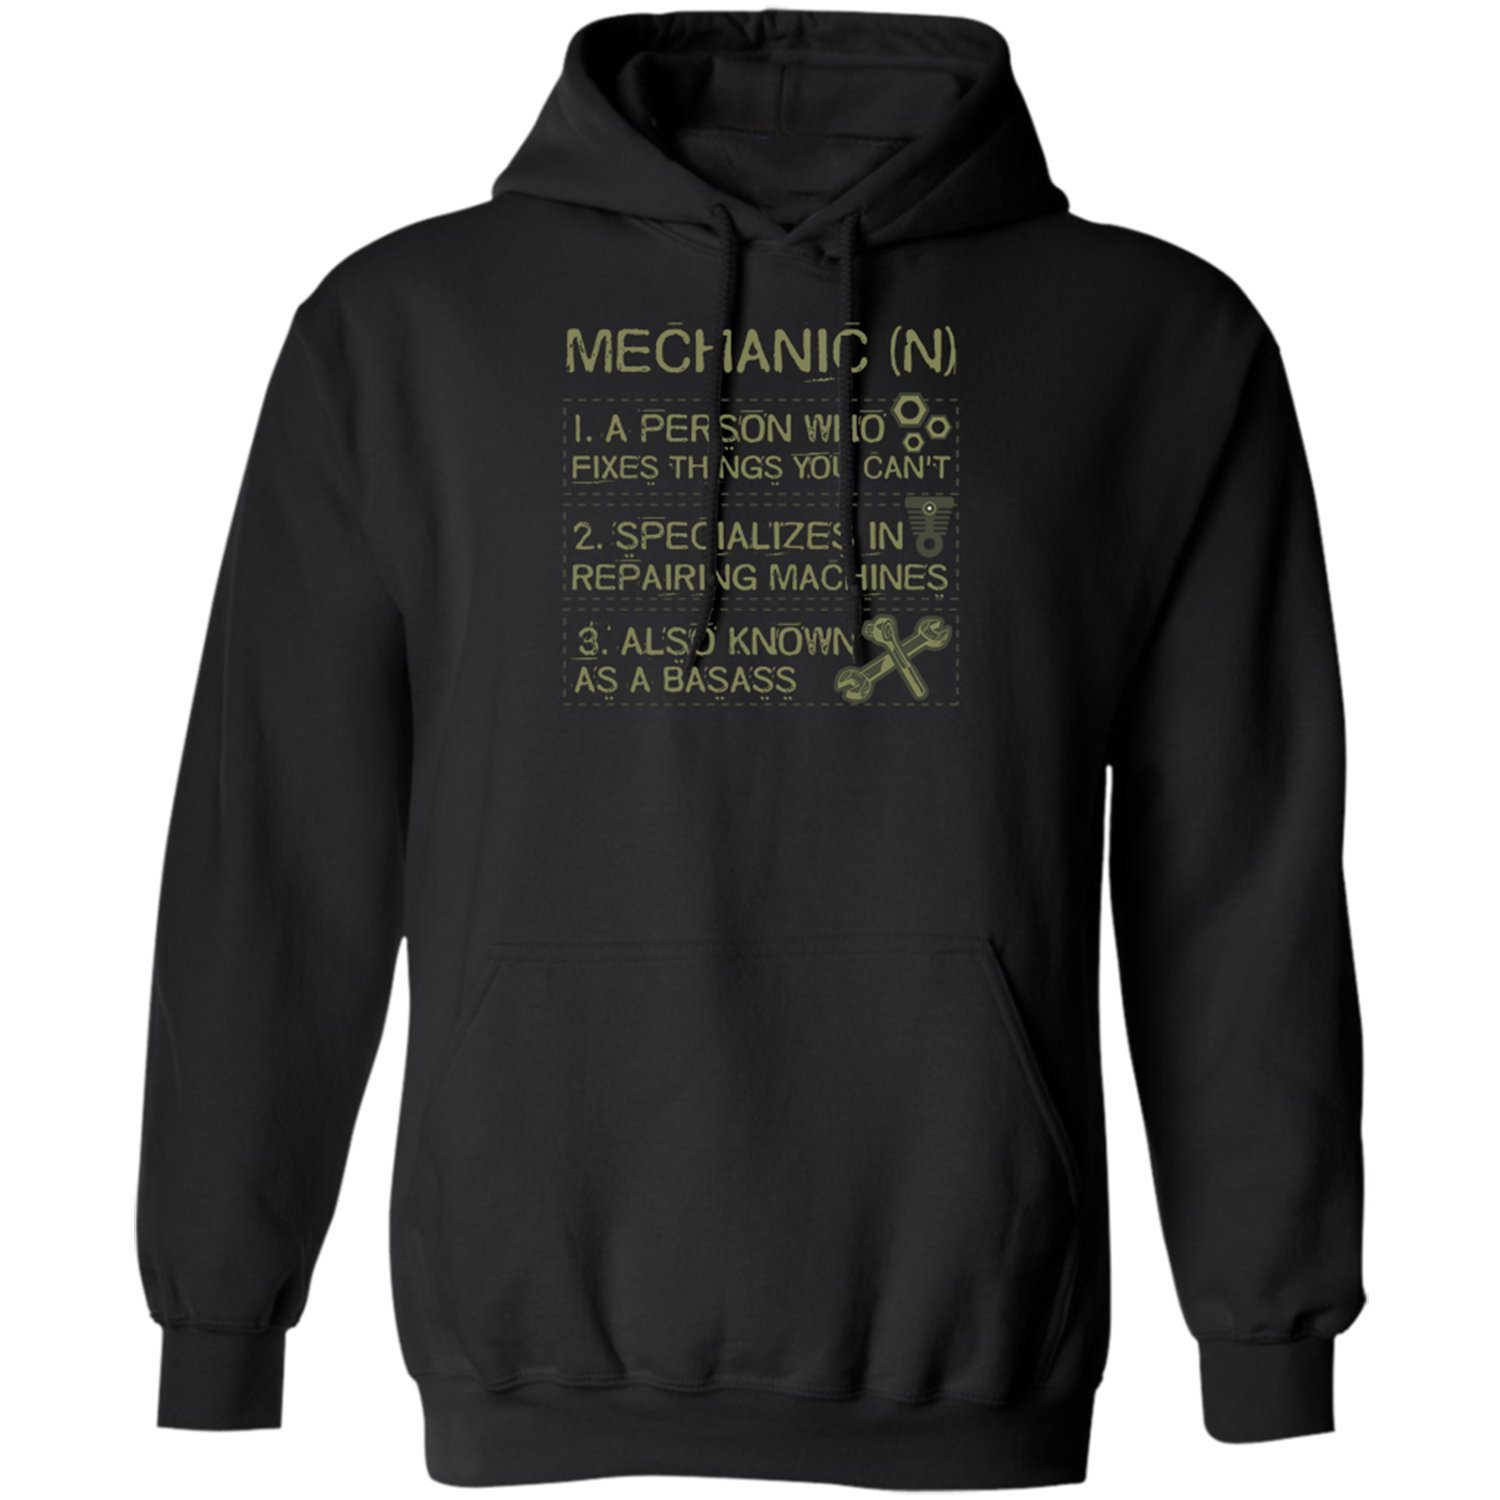 Pures Designs Mechanic Mean-Personalized for Mechanics-Mechanical s-Mens Hoodie